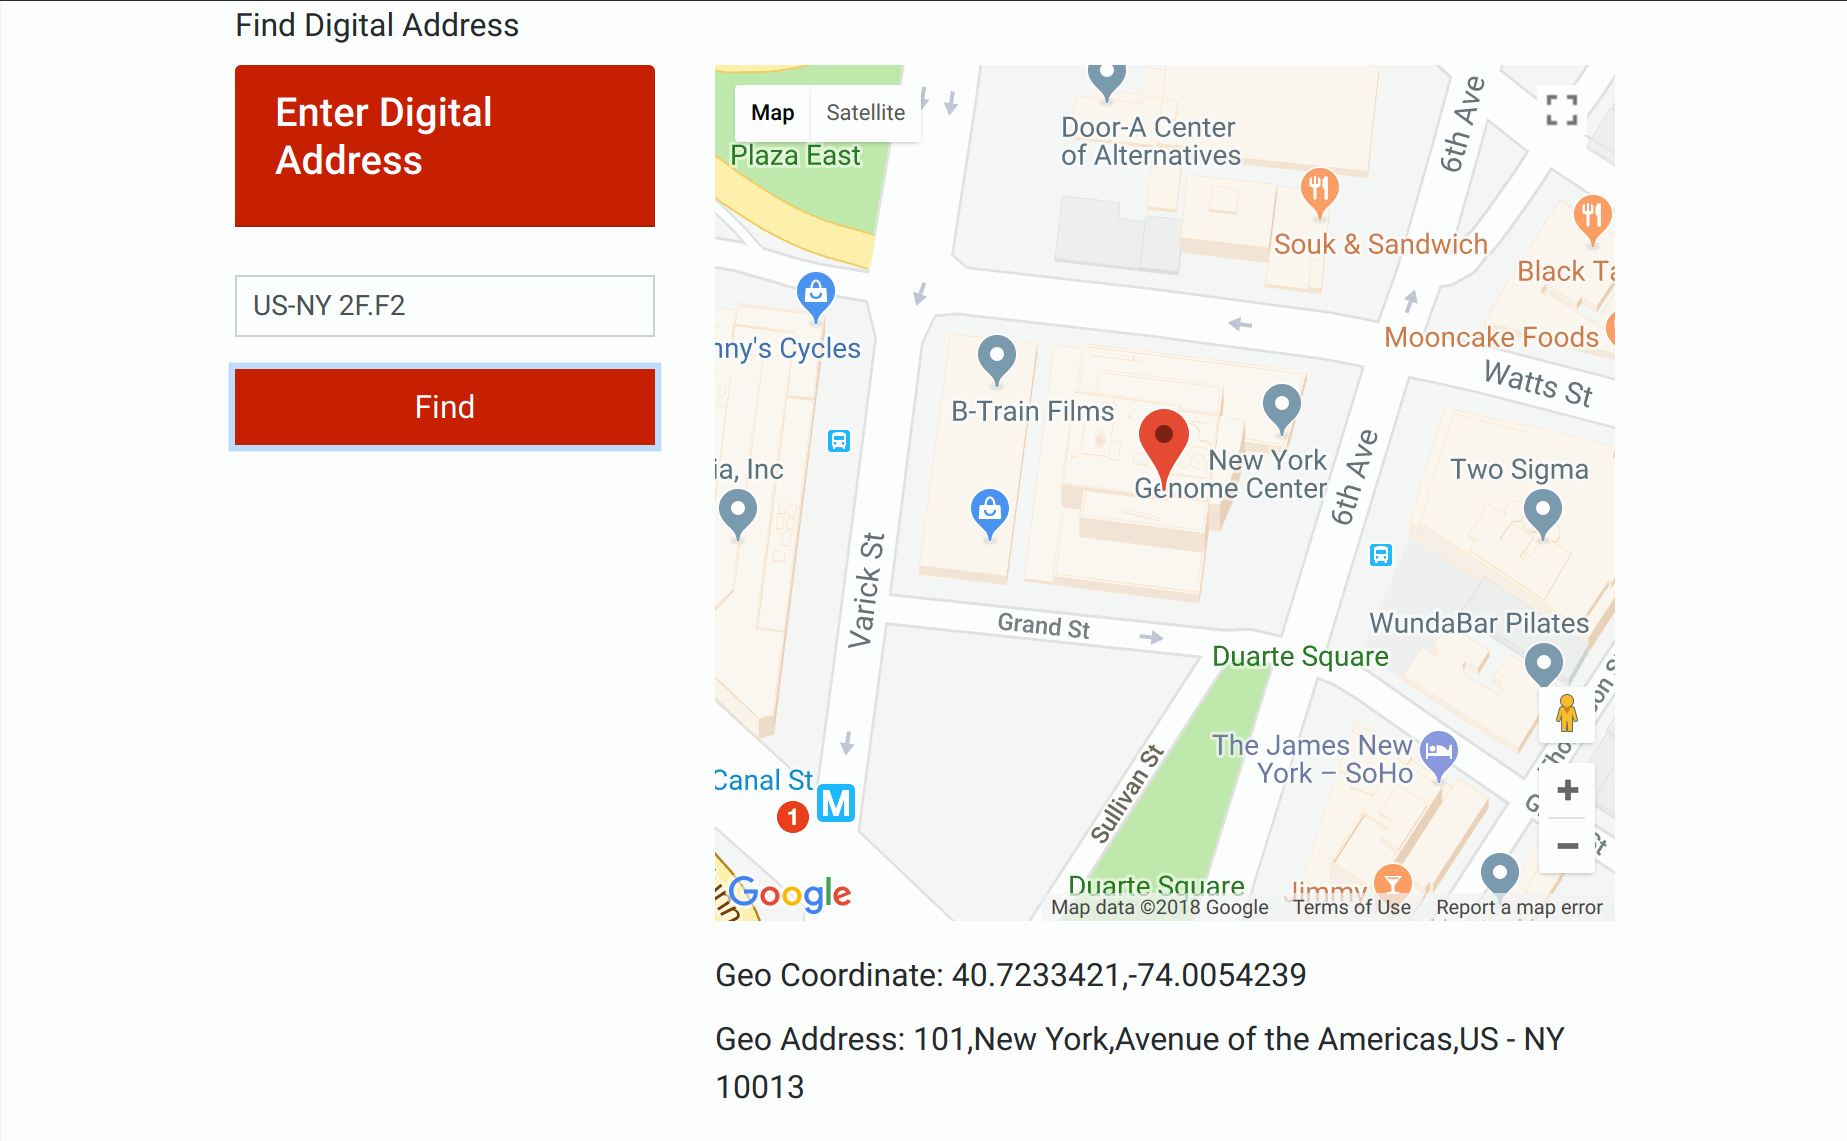 How to Generate a Short and Unique Digital Address for Any Location